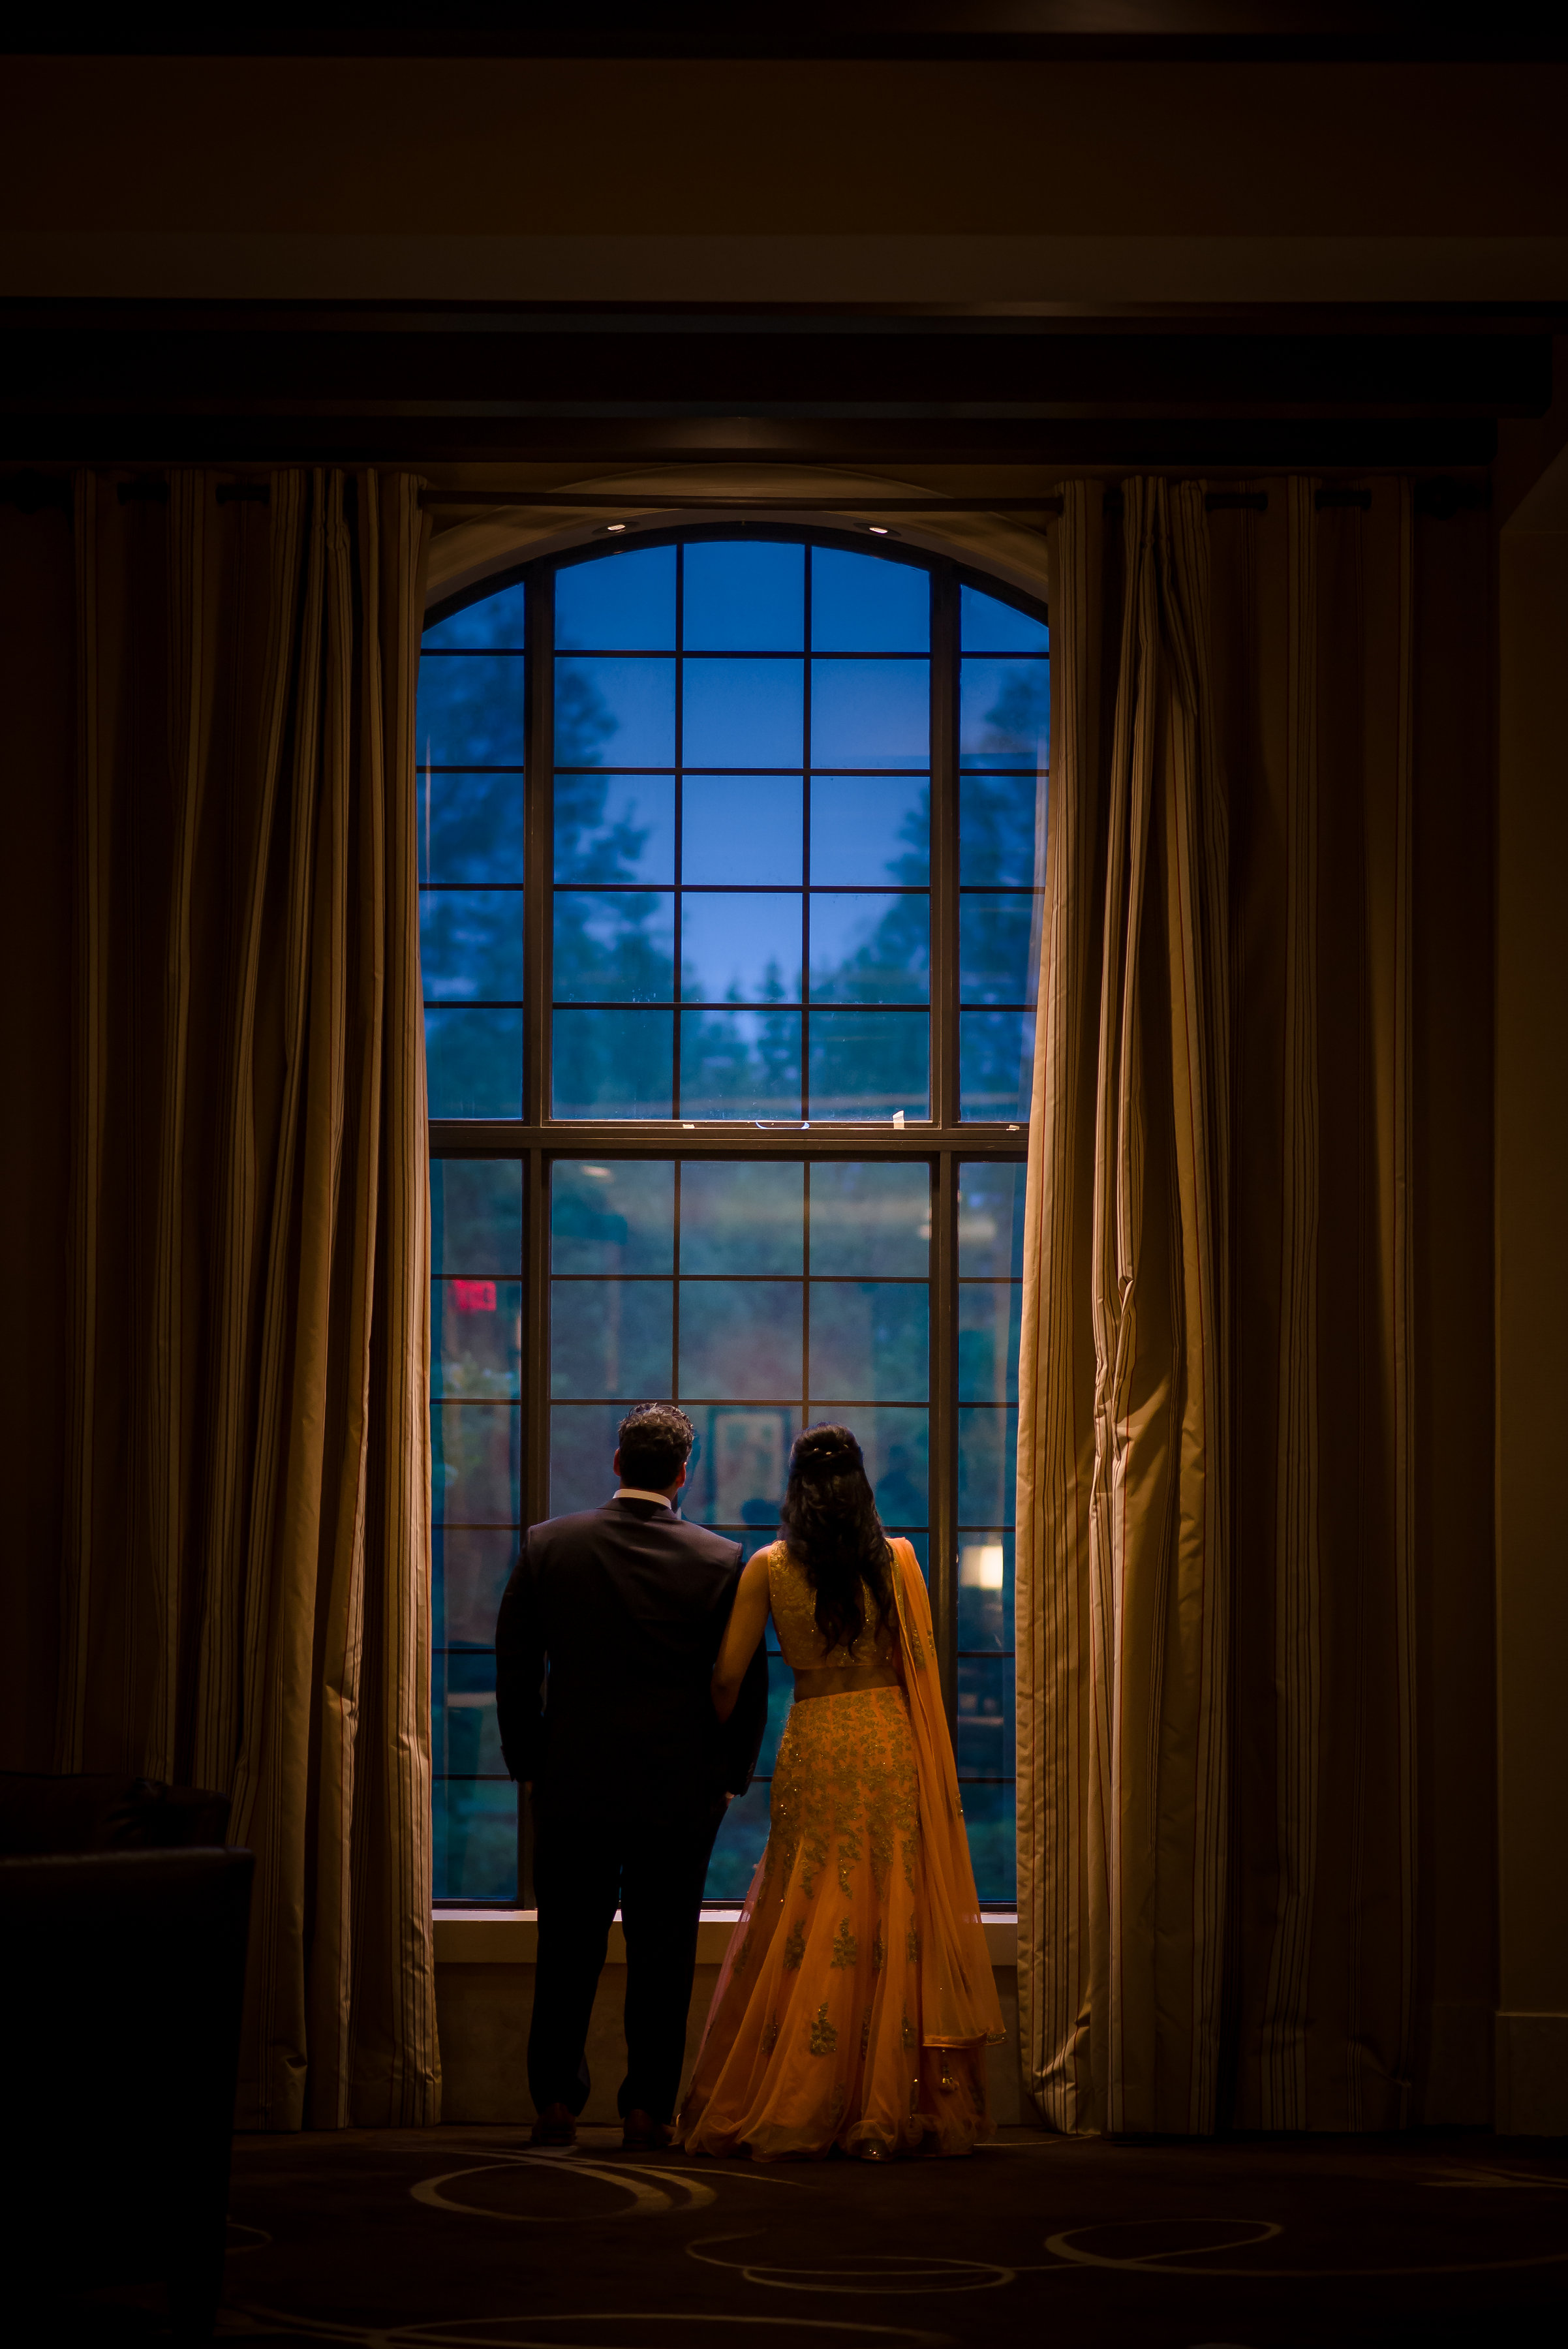 INDIAN COUPLE LOOKING OUT WINDOW